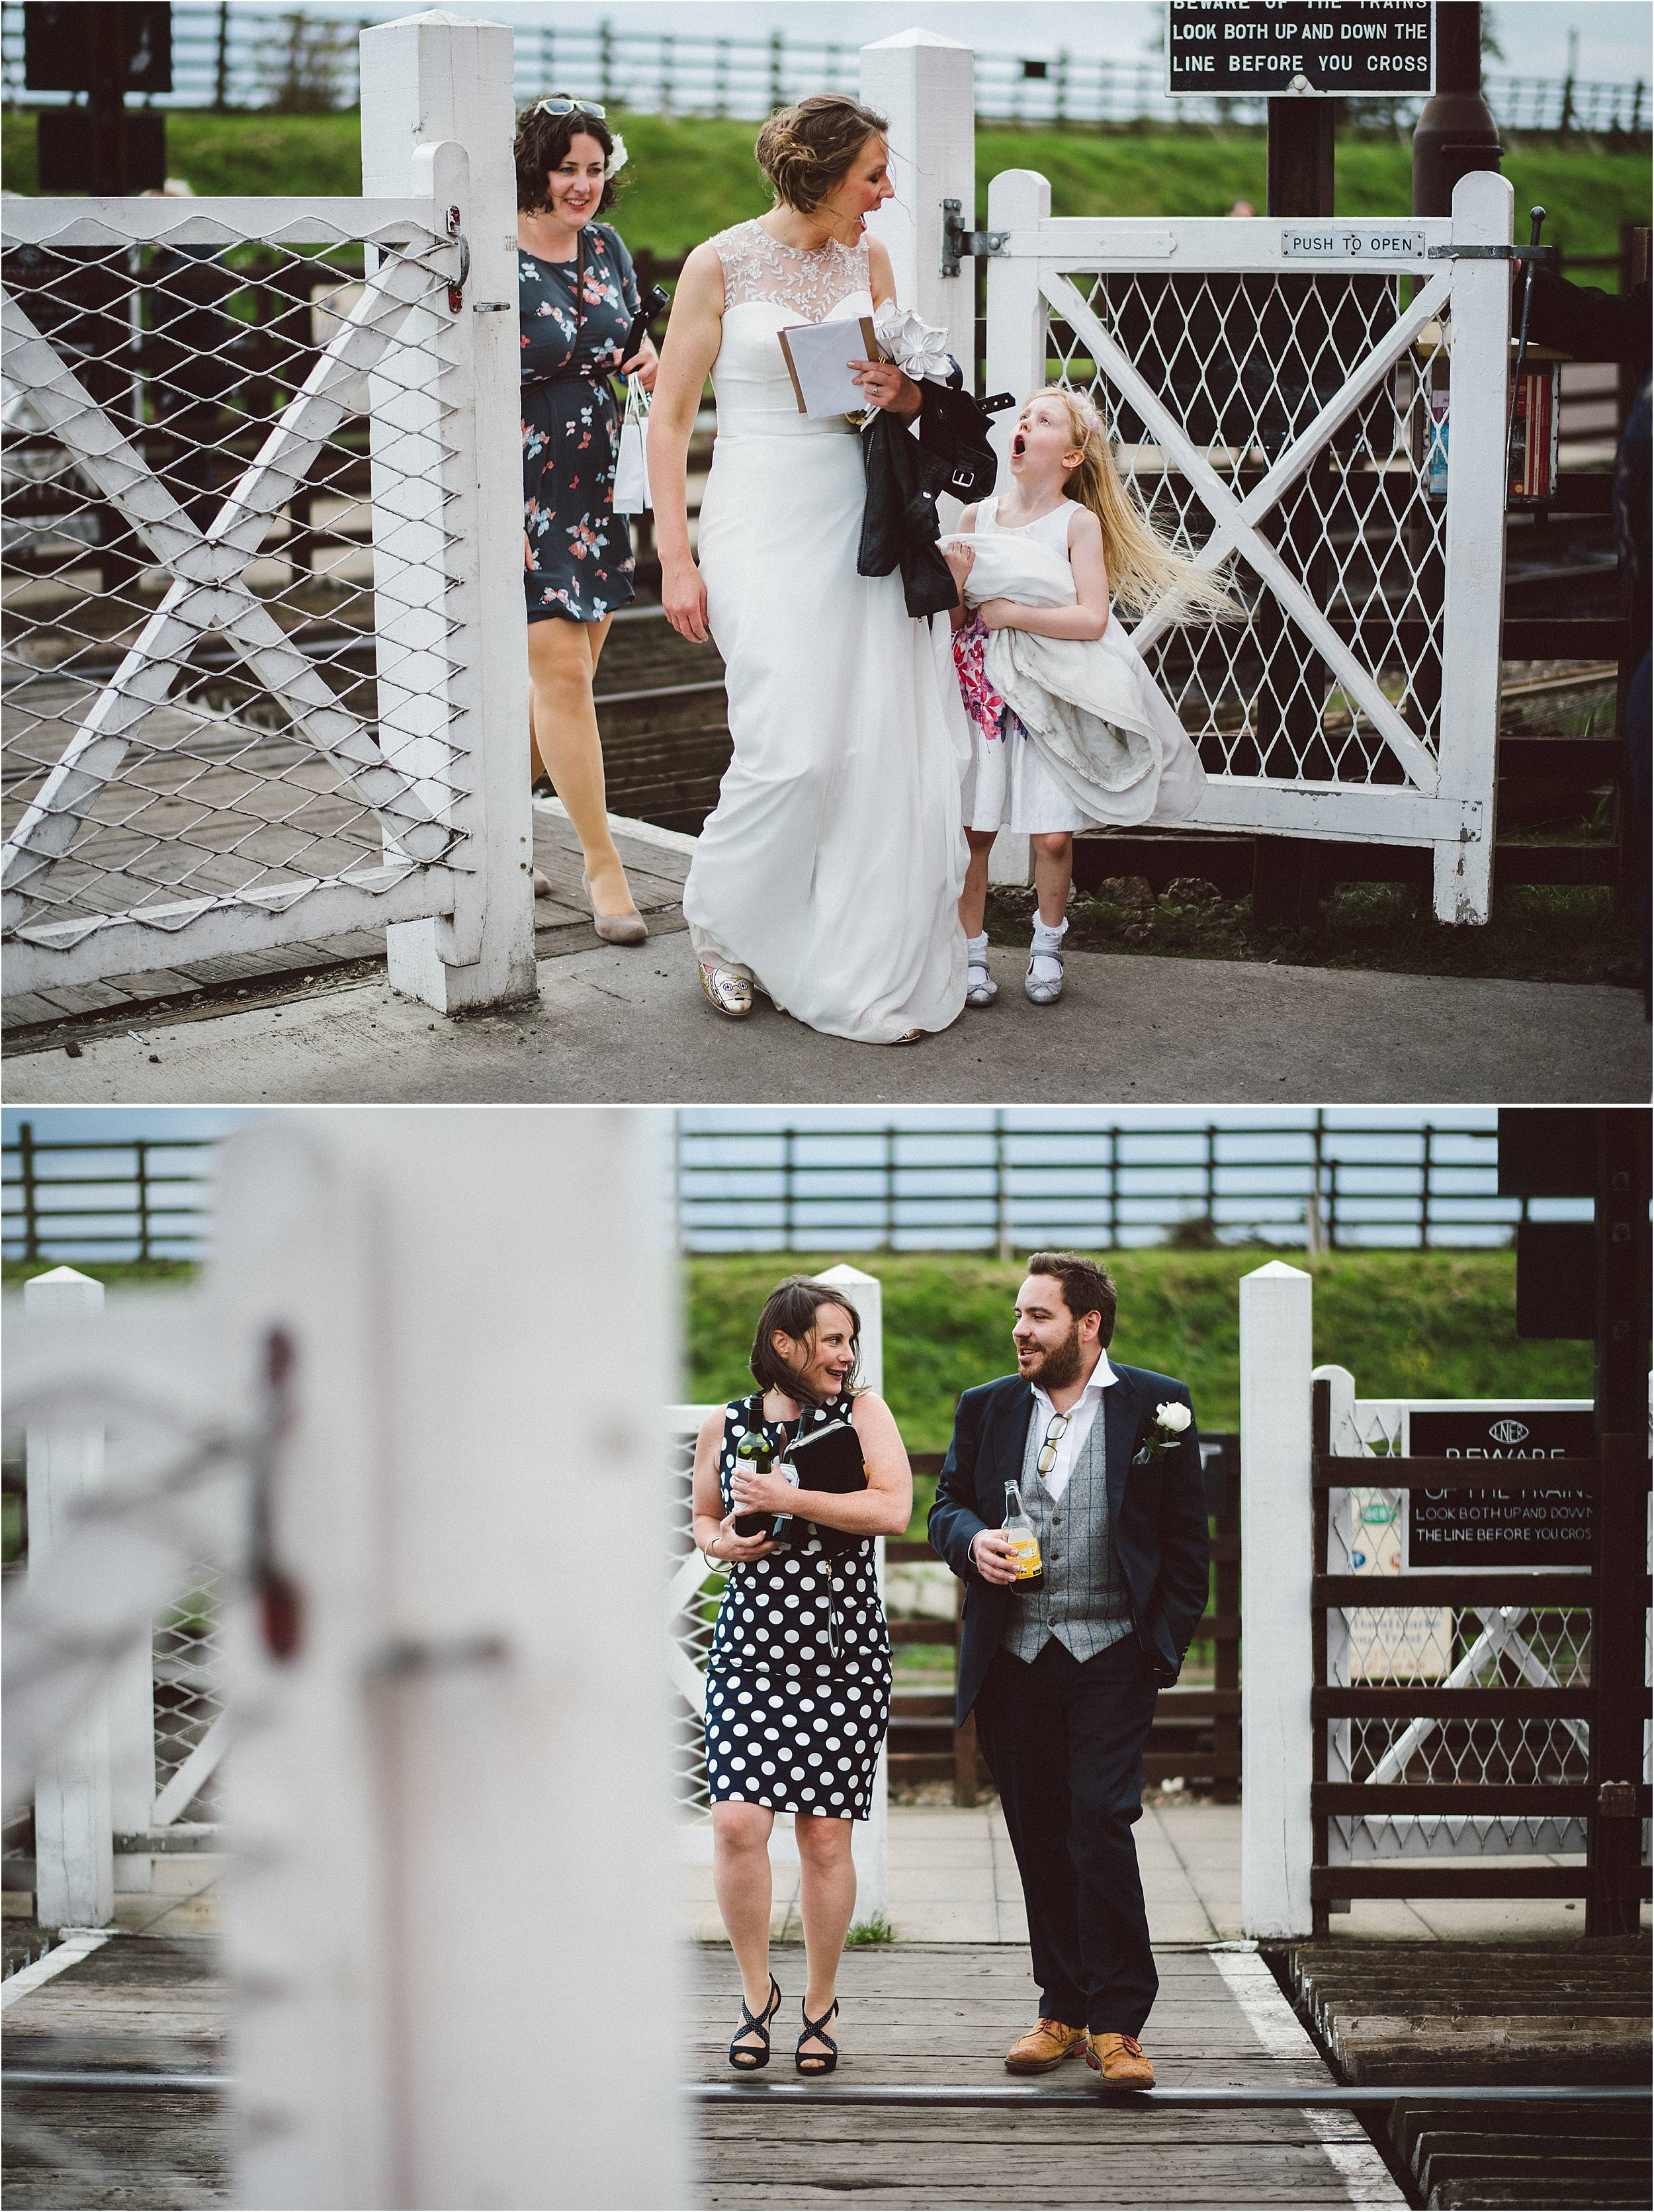 The Great Central Railway Wedding Photography_0149.jpg